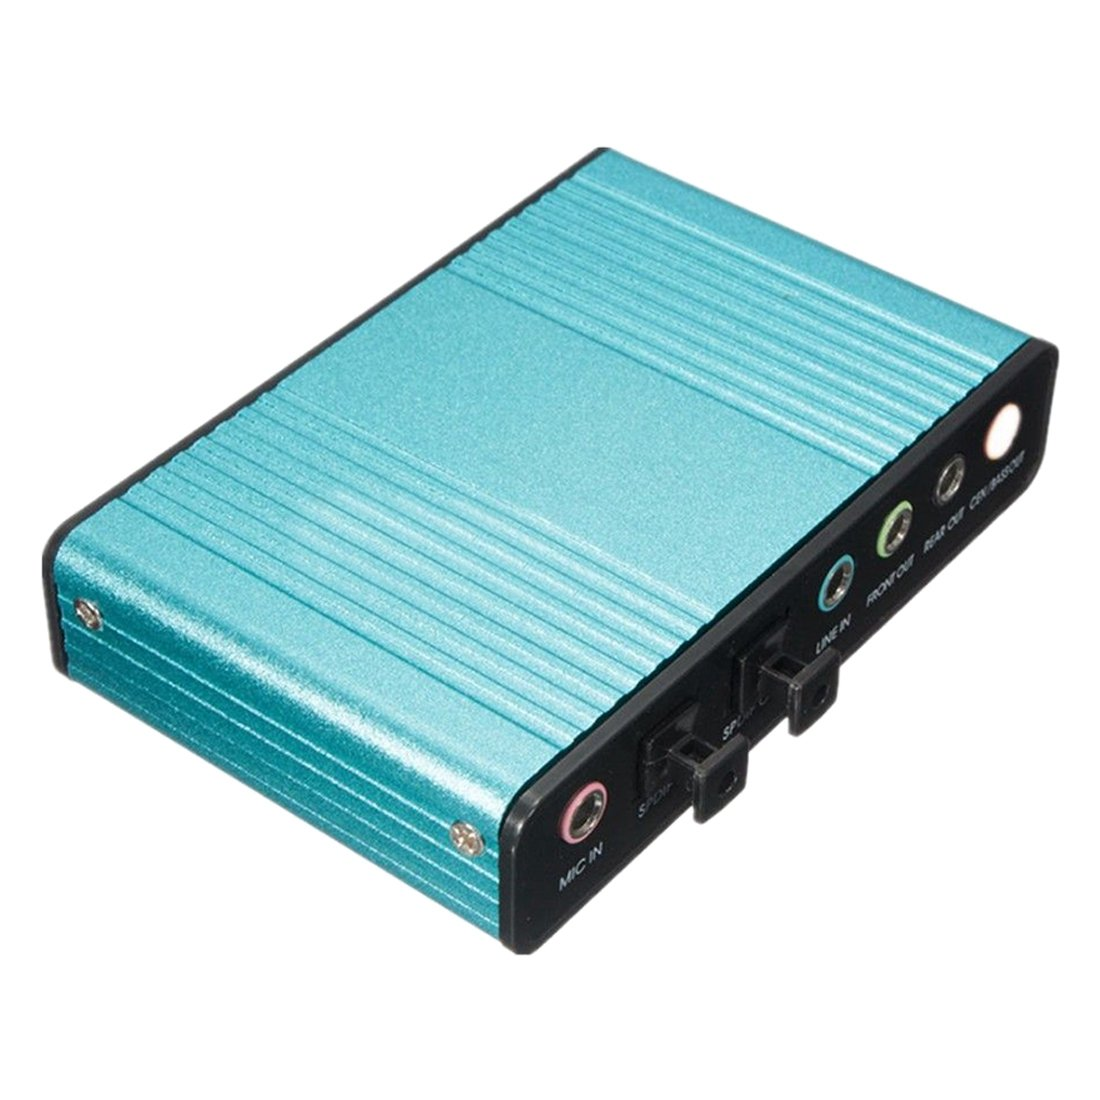 Optical Sound Card - SODIAL(R)External Sound Card USB 6 Channel 5.1 Audio S / PDIF Optical Sound Card For PC Light blue